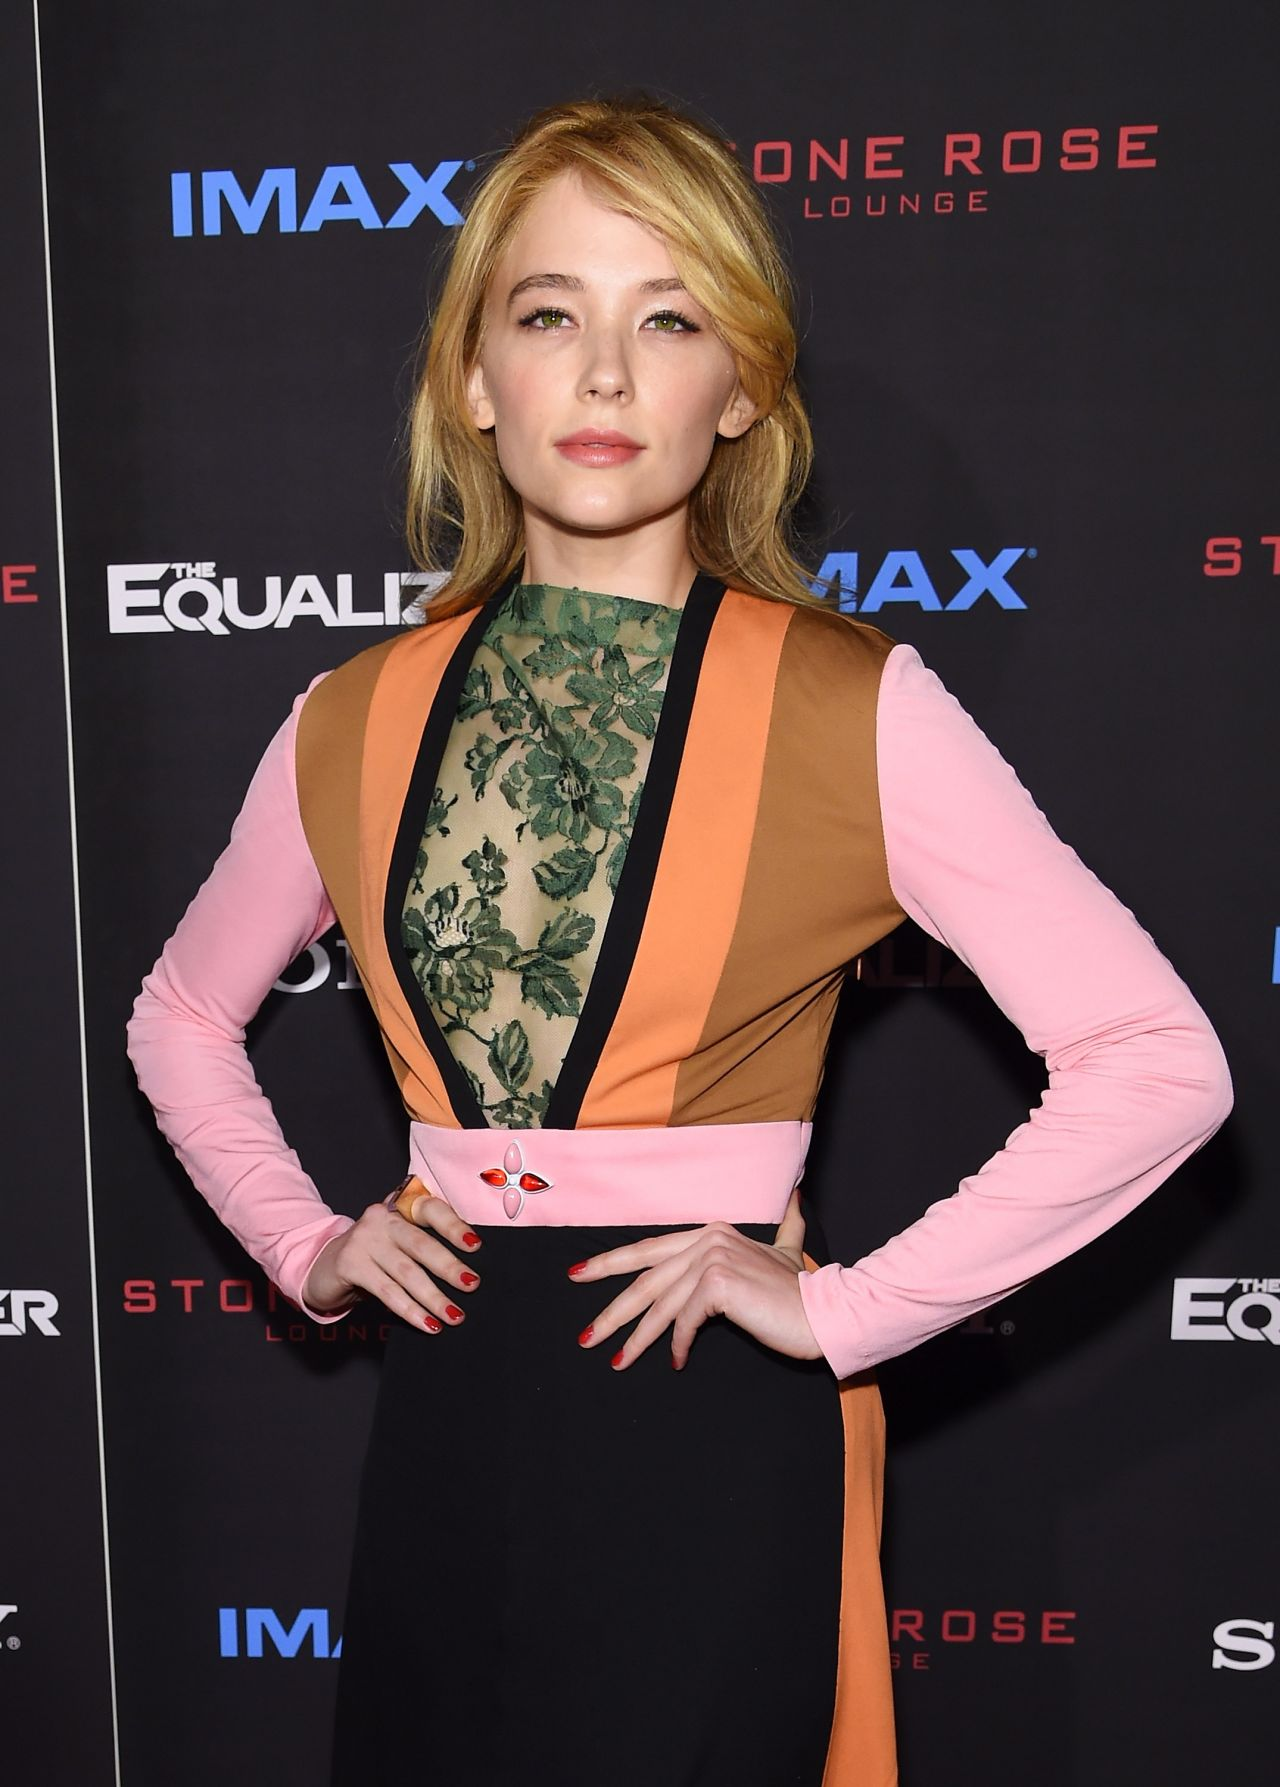 haley-bennett-the-equalizer-premiere-in-new-york-city_5